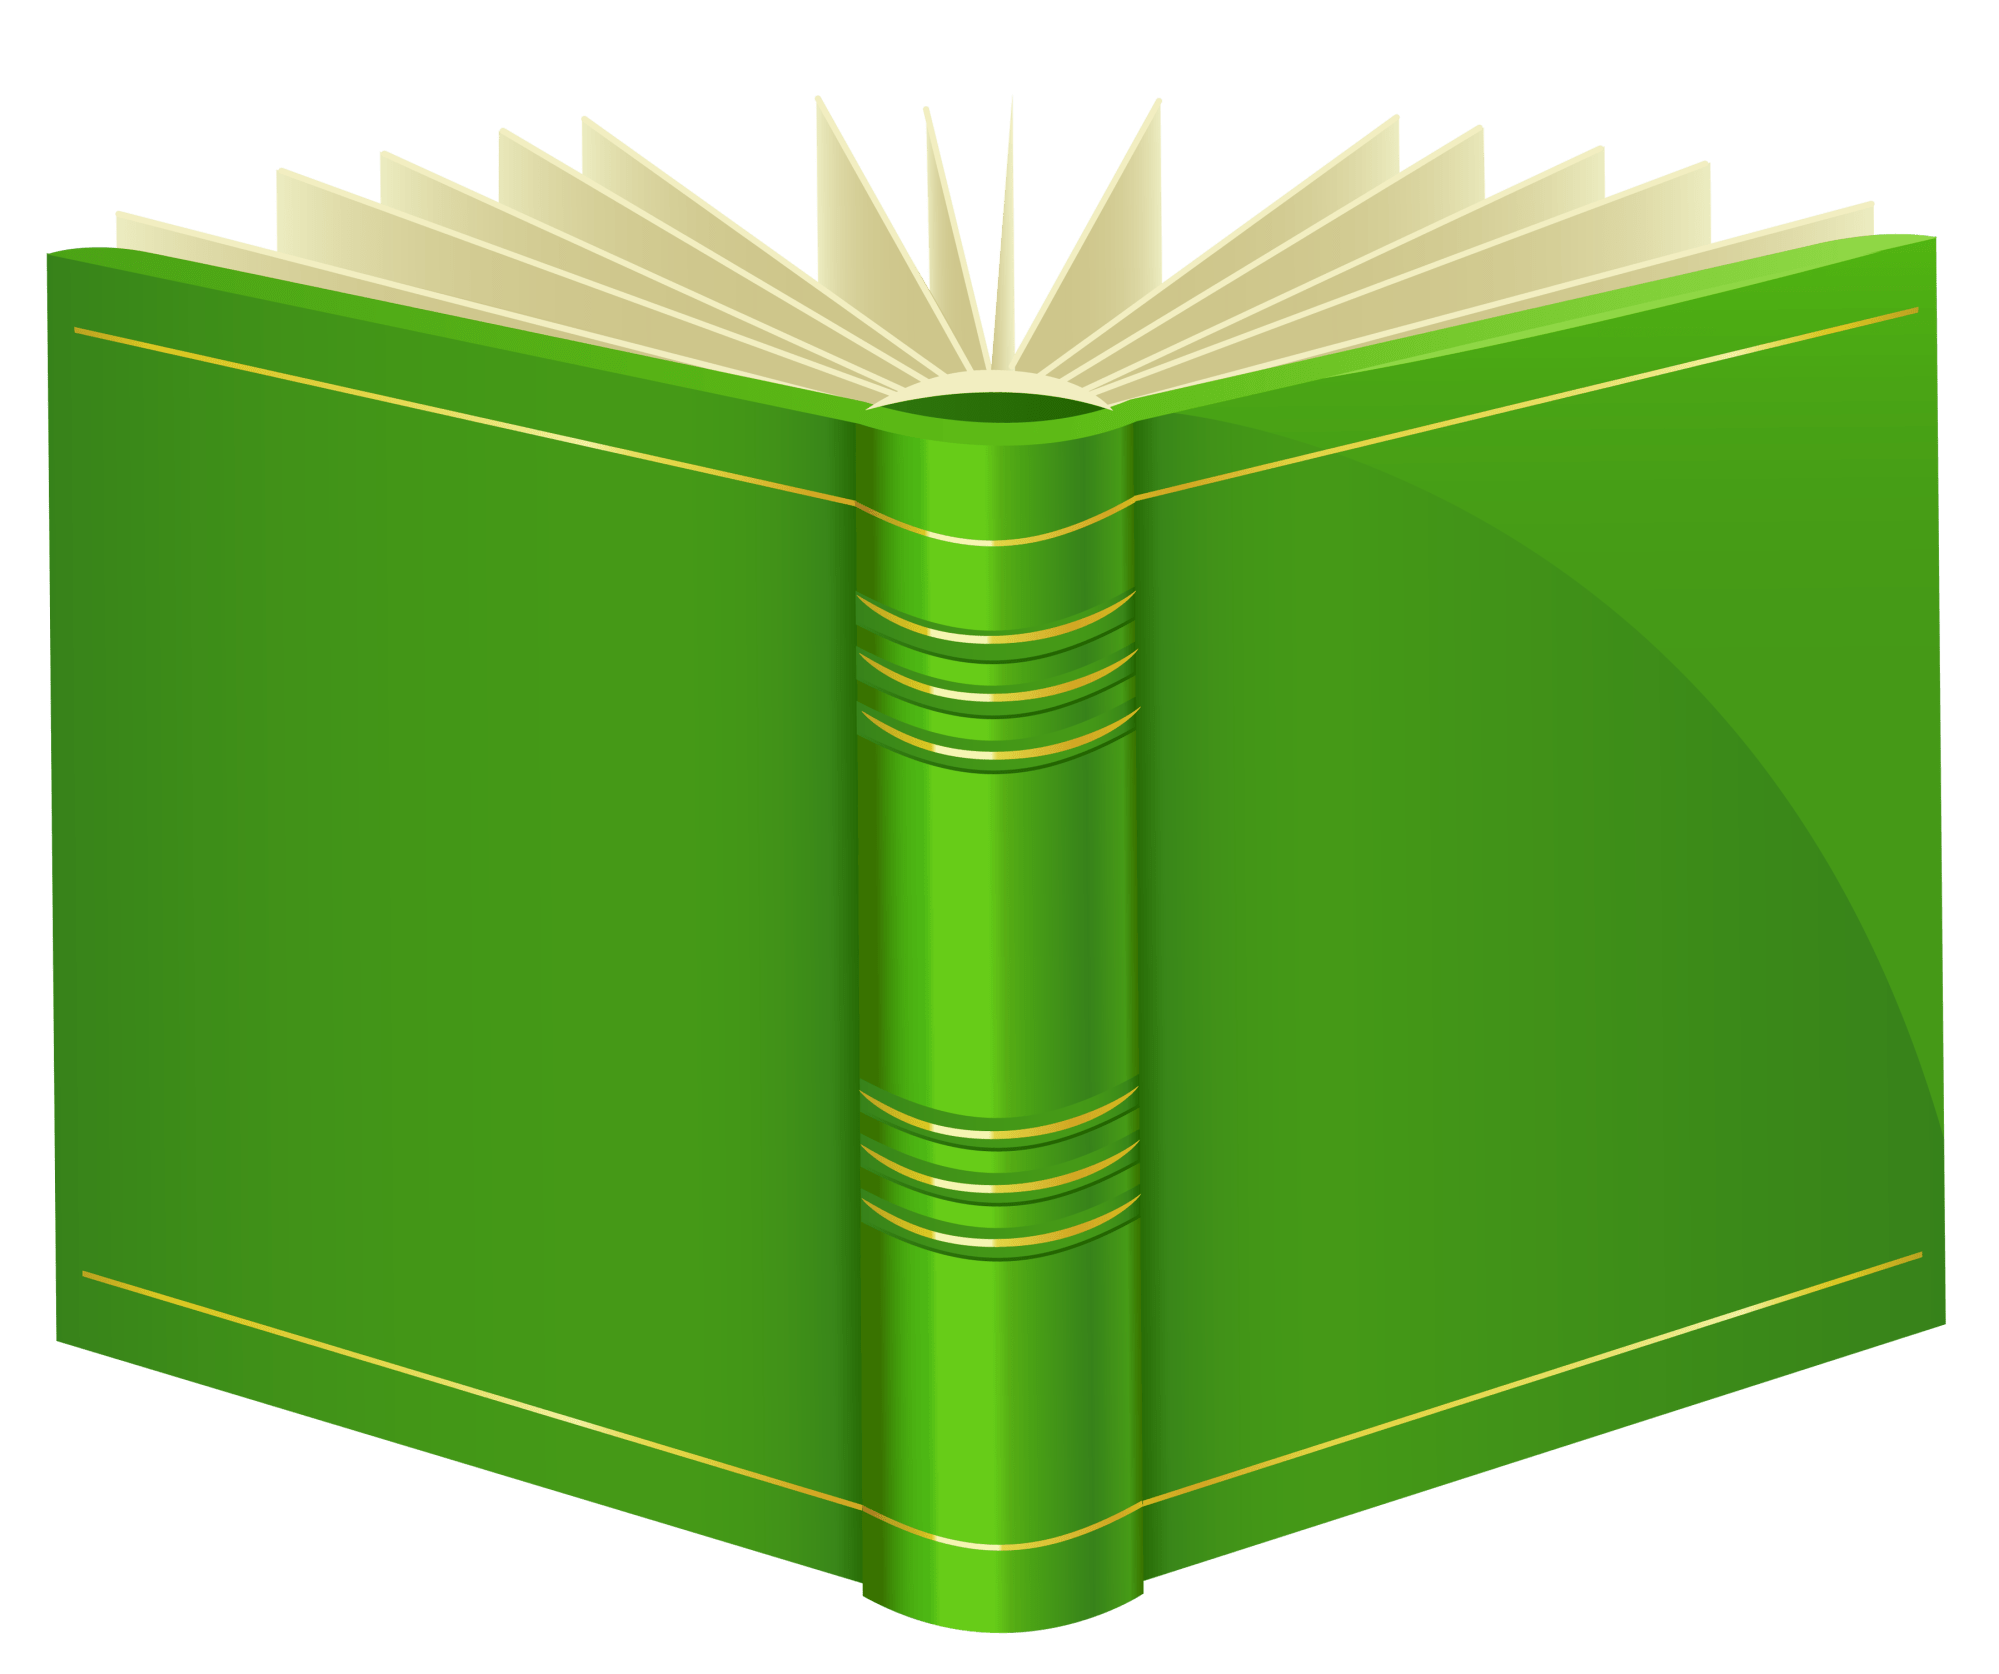 hight resolution of green book png clipart